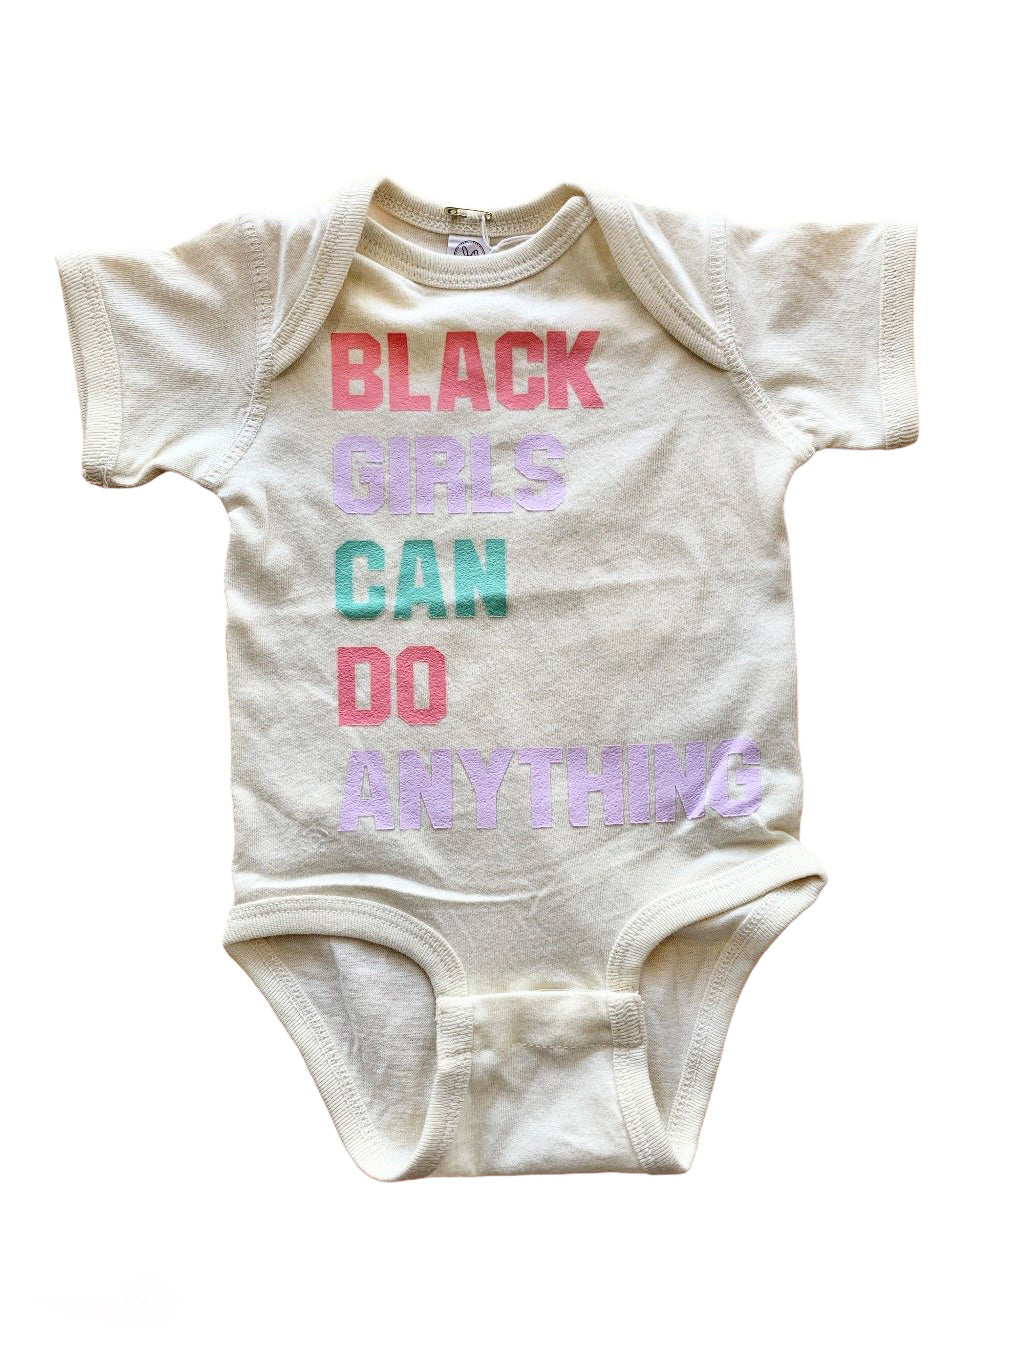 Typical Black Tee Black Girls Can Do Anything Onesie